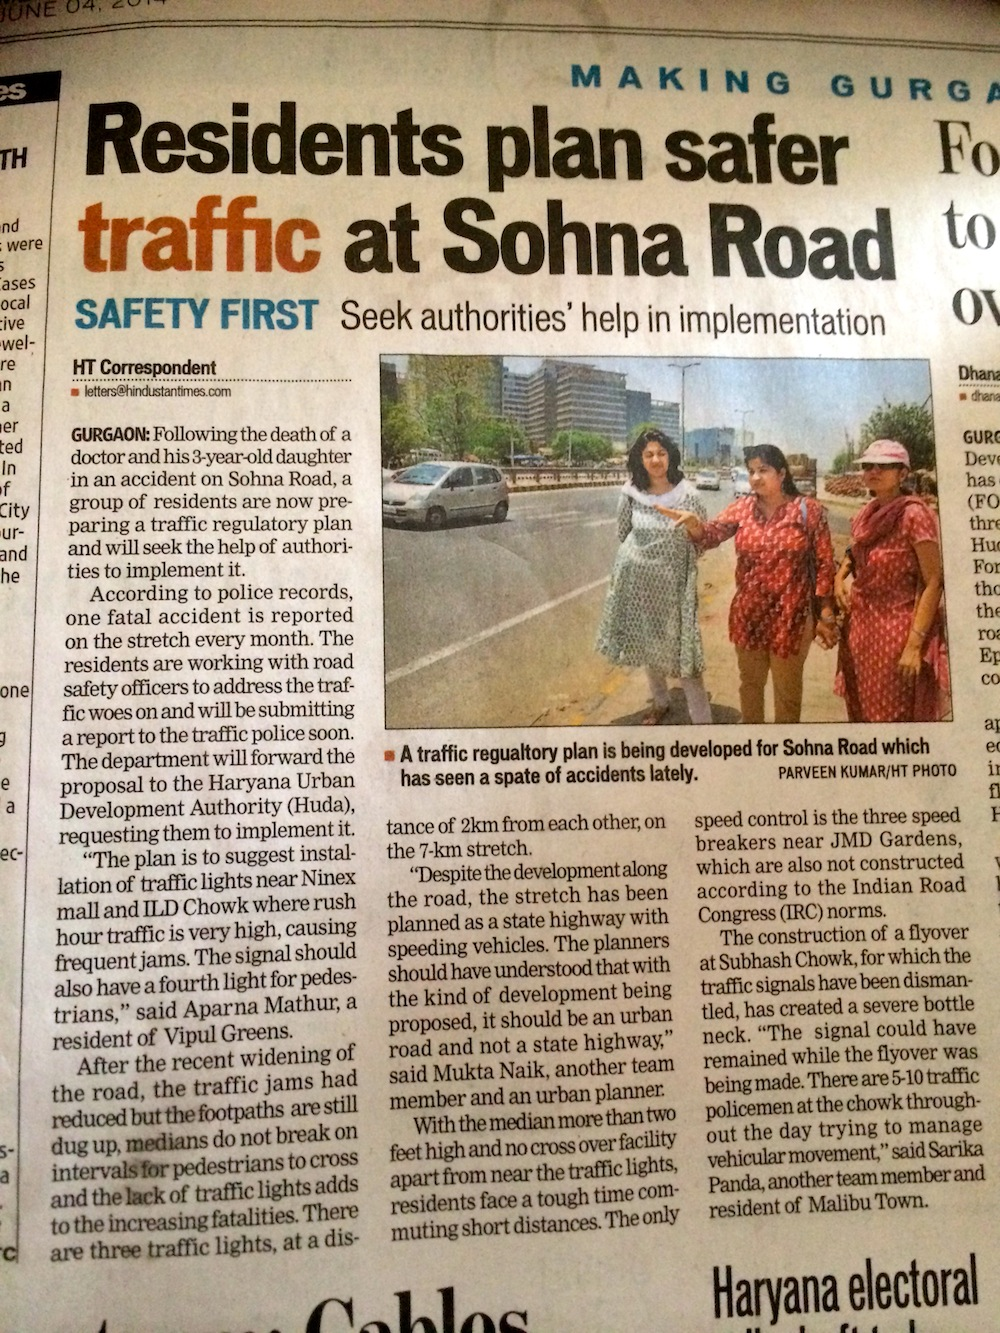 The HT Gurgaon edition carried a piece today on our citizen activism to make Sohna Road safer. Let's start with our own neighborhoods.